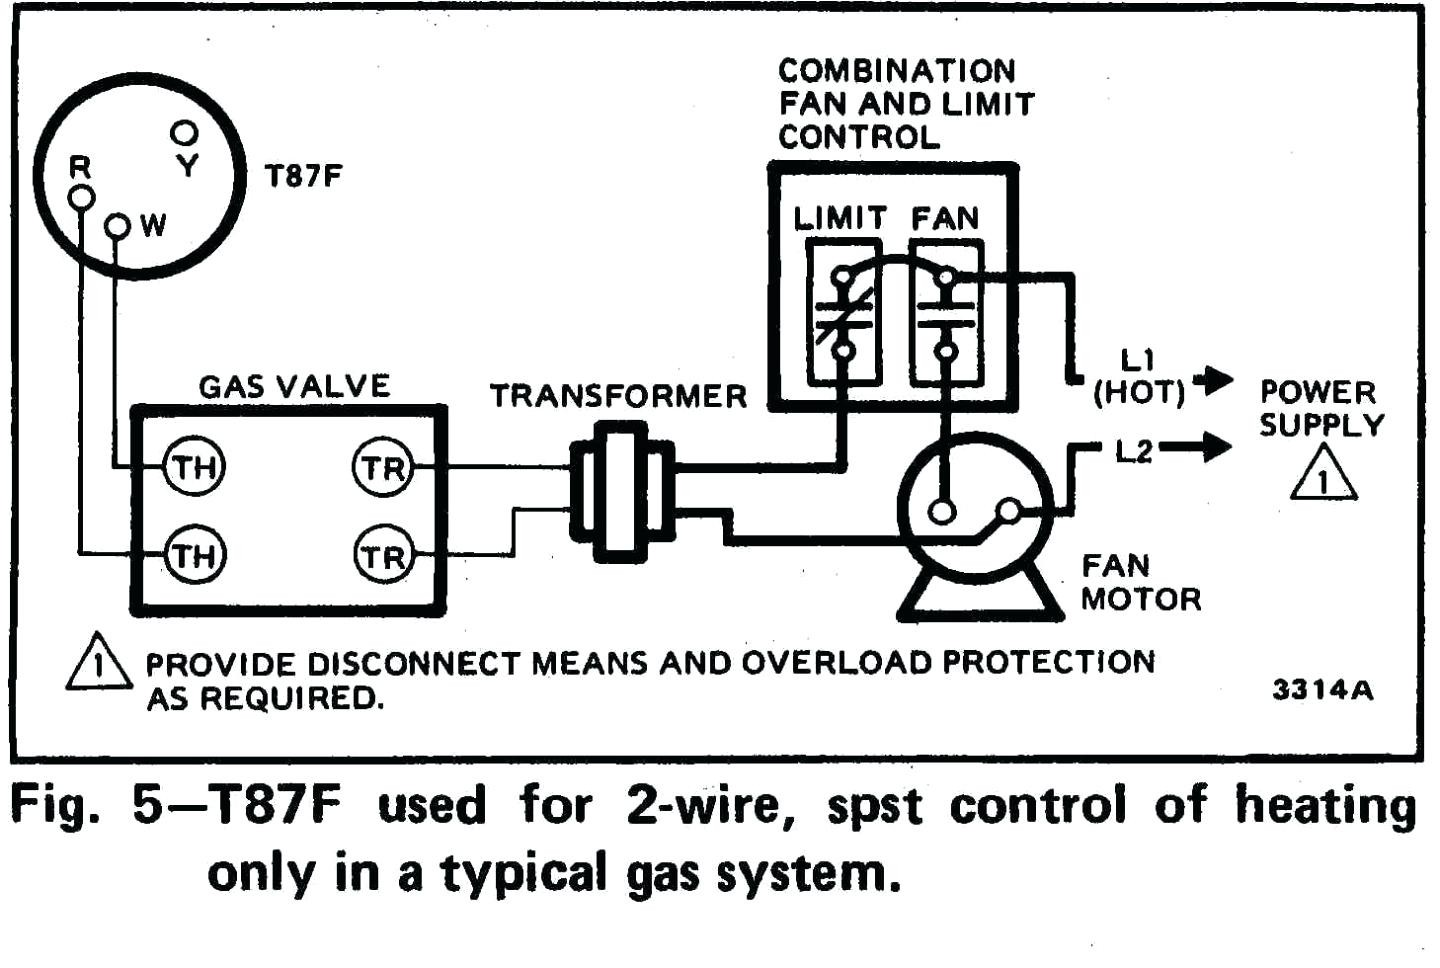 Defrost timer wiring diagram new wiring diagram image full size of kenmore refrigerator defrost timer wiring diagram cool cell best image wire clock asfbconference2016 Gallery